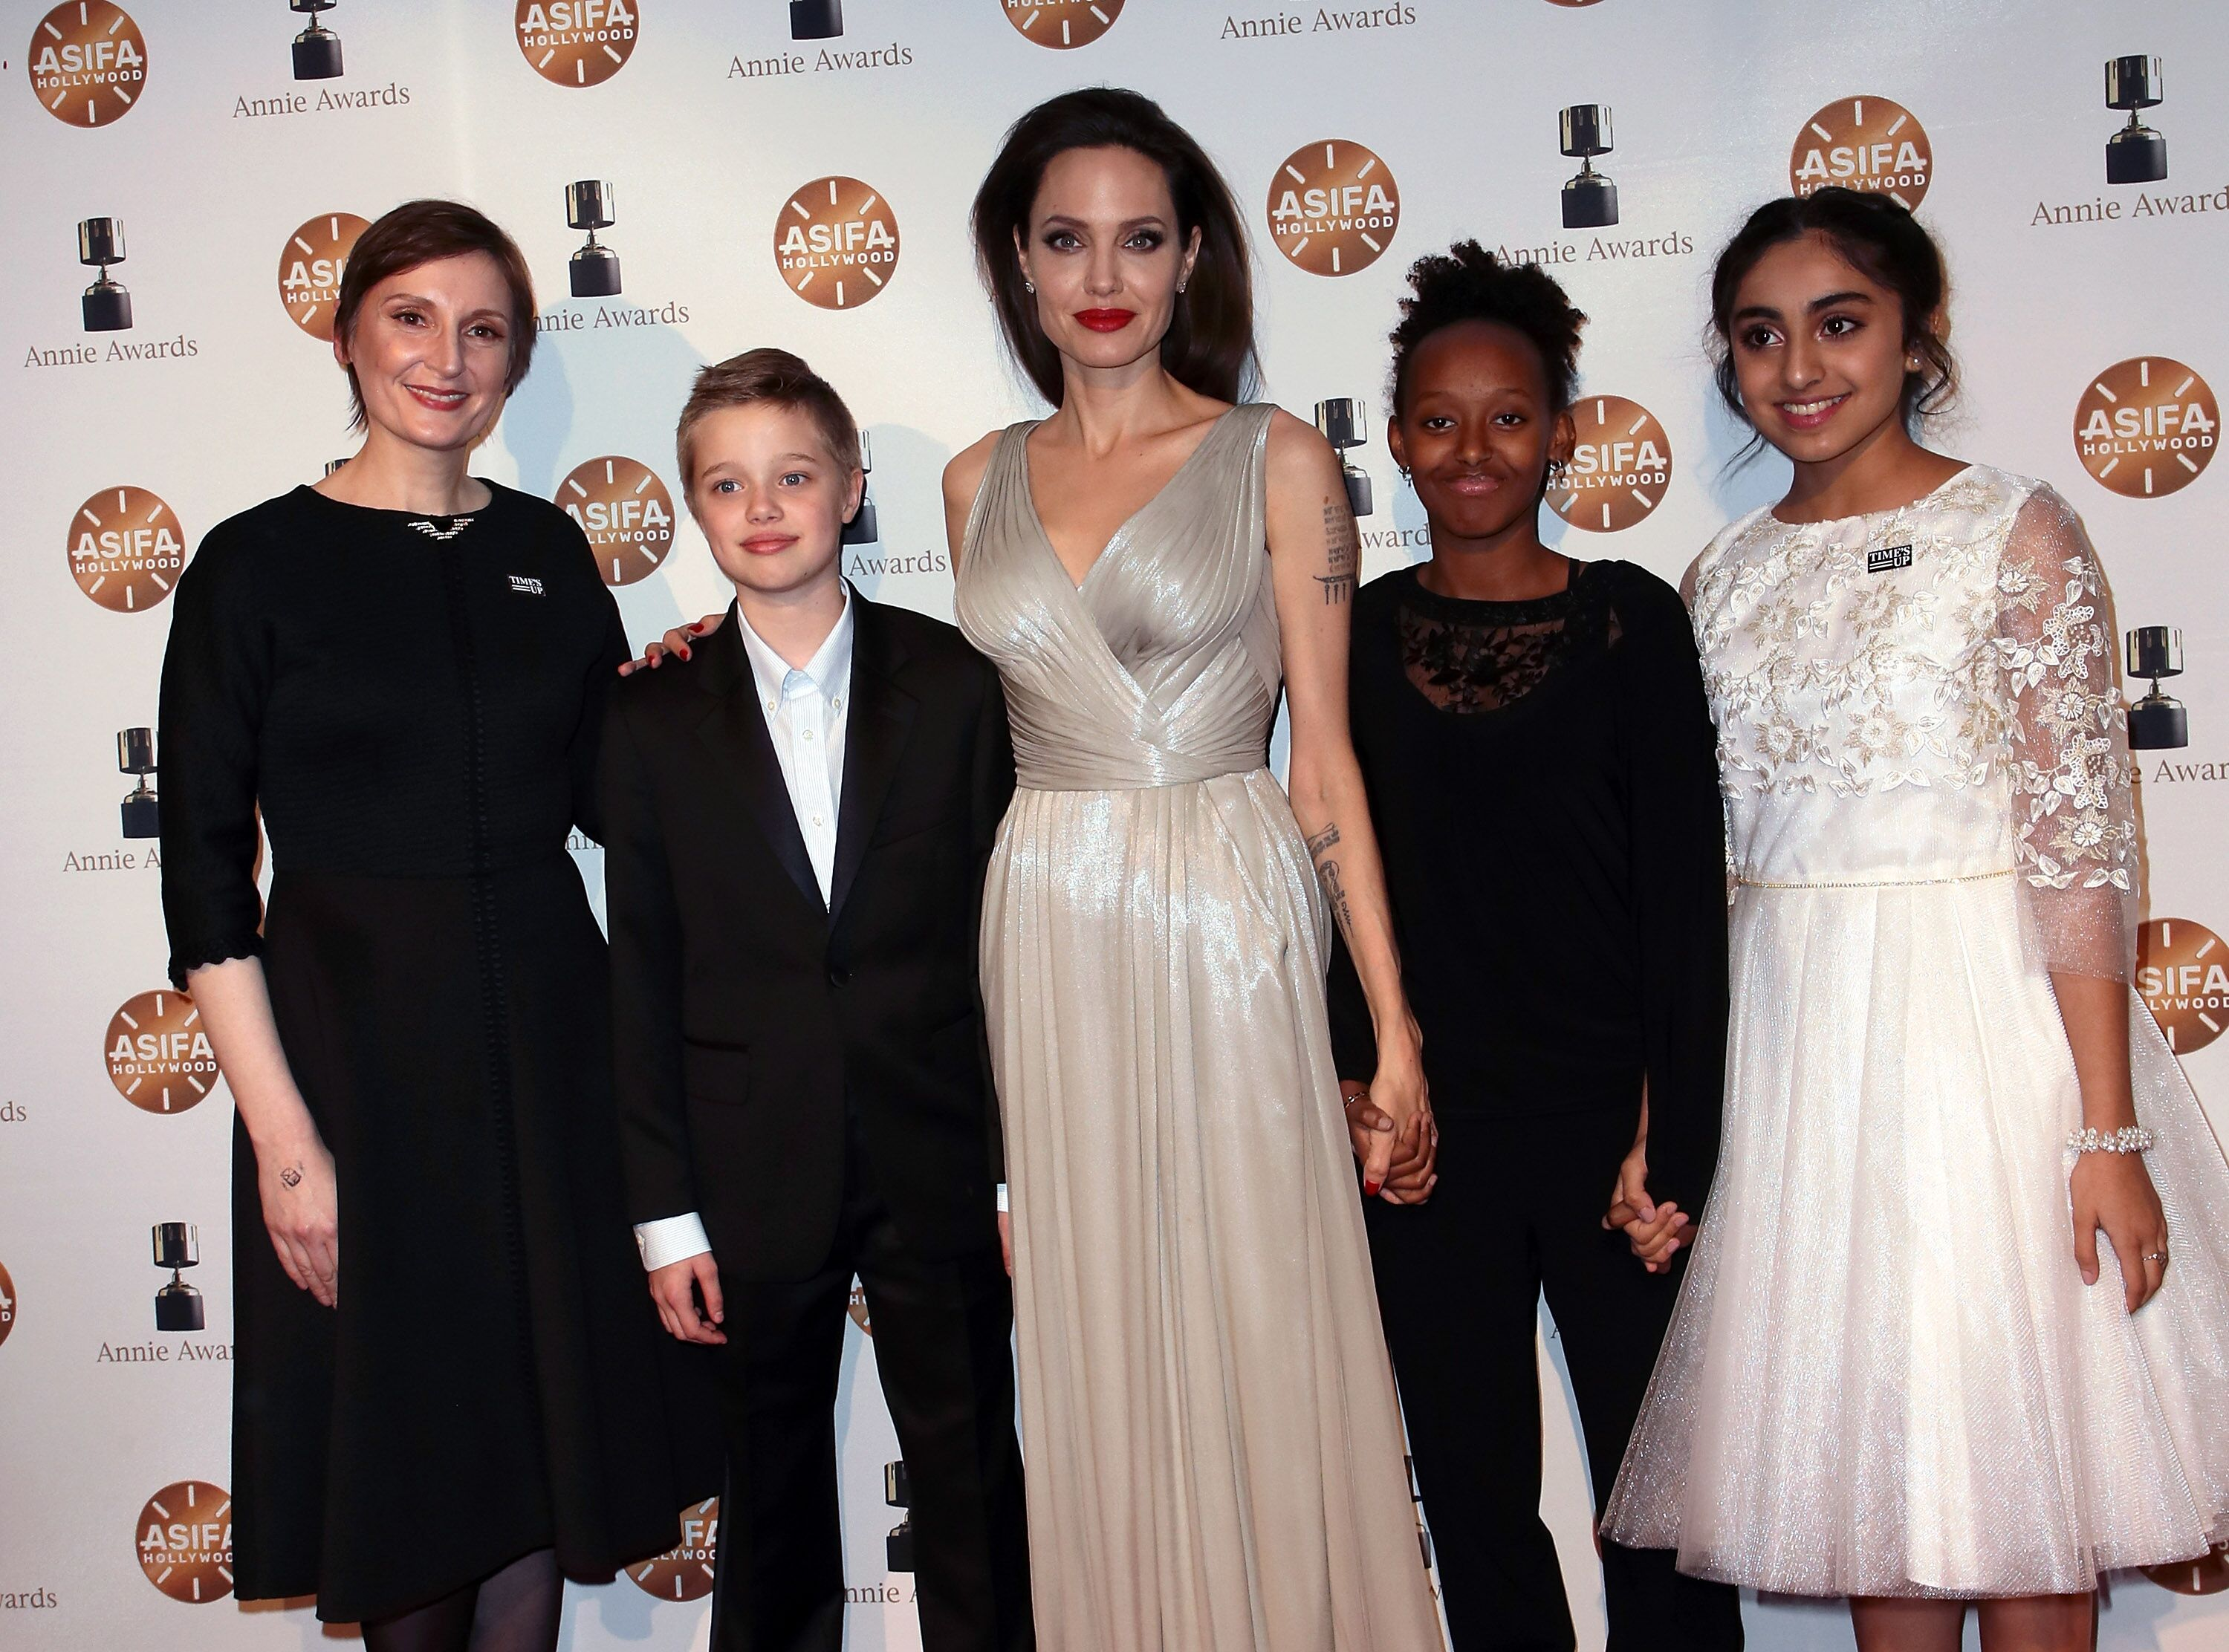 Nora Twomey, Shiloh Nouvel Jolie-Pitt, actress Angelina Jolie, Zahara Marley Jolie-Pitt and actress Saara Chaudry attend the 45th Annual Annie Awards at Royce Hall on February 3, 2018 in Los Angeles, California | Photo: Getty Images